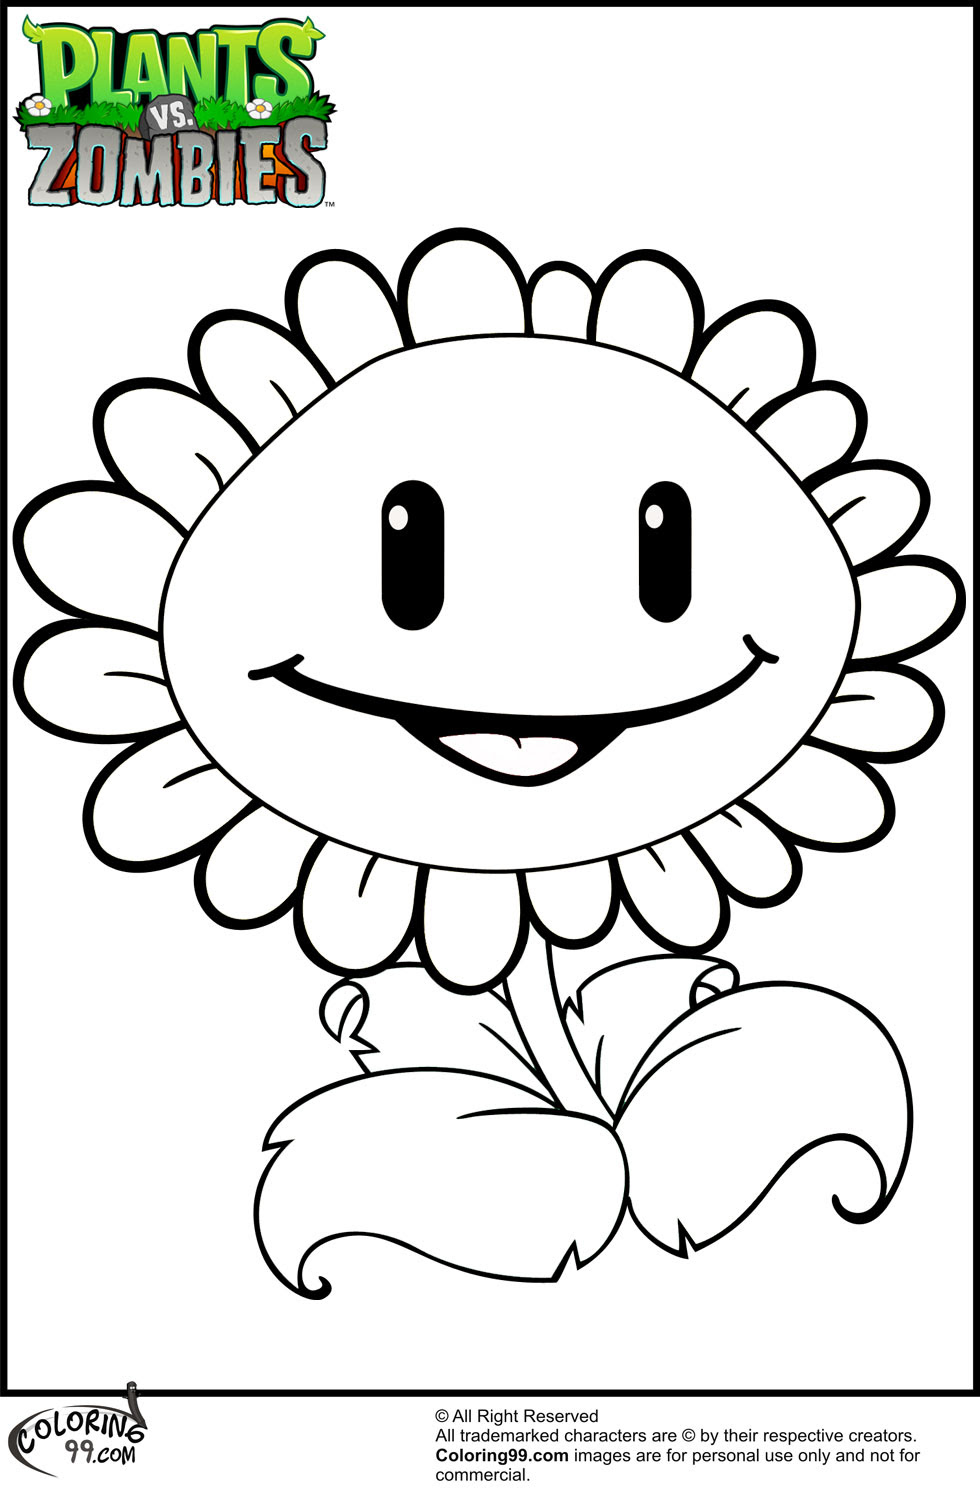 Best Of Plants Vs Zombies Coloring Pages To Print Anyoneforanyateam